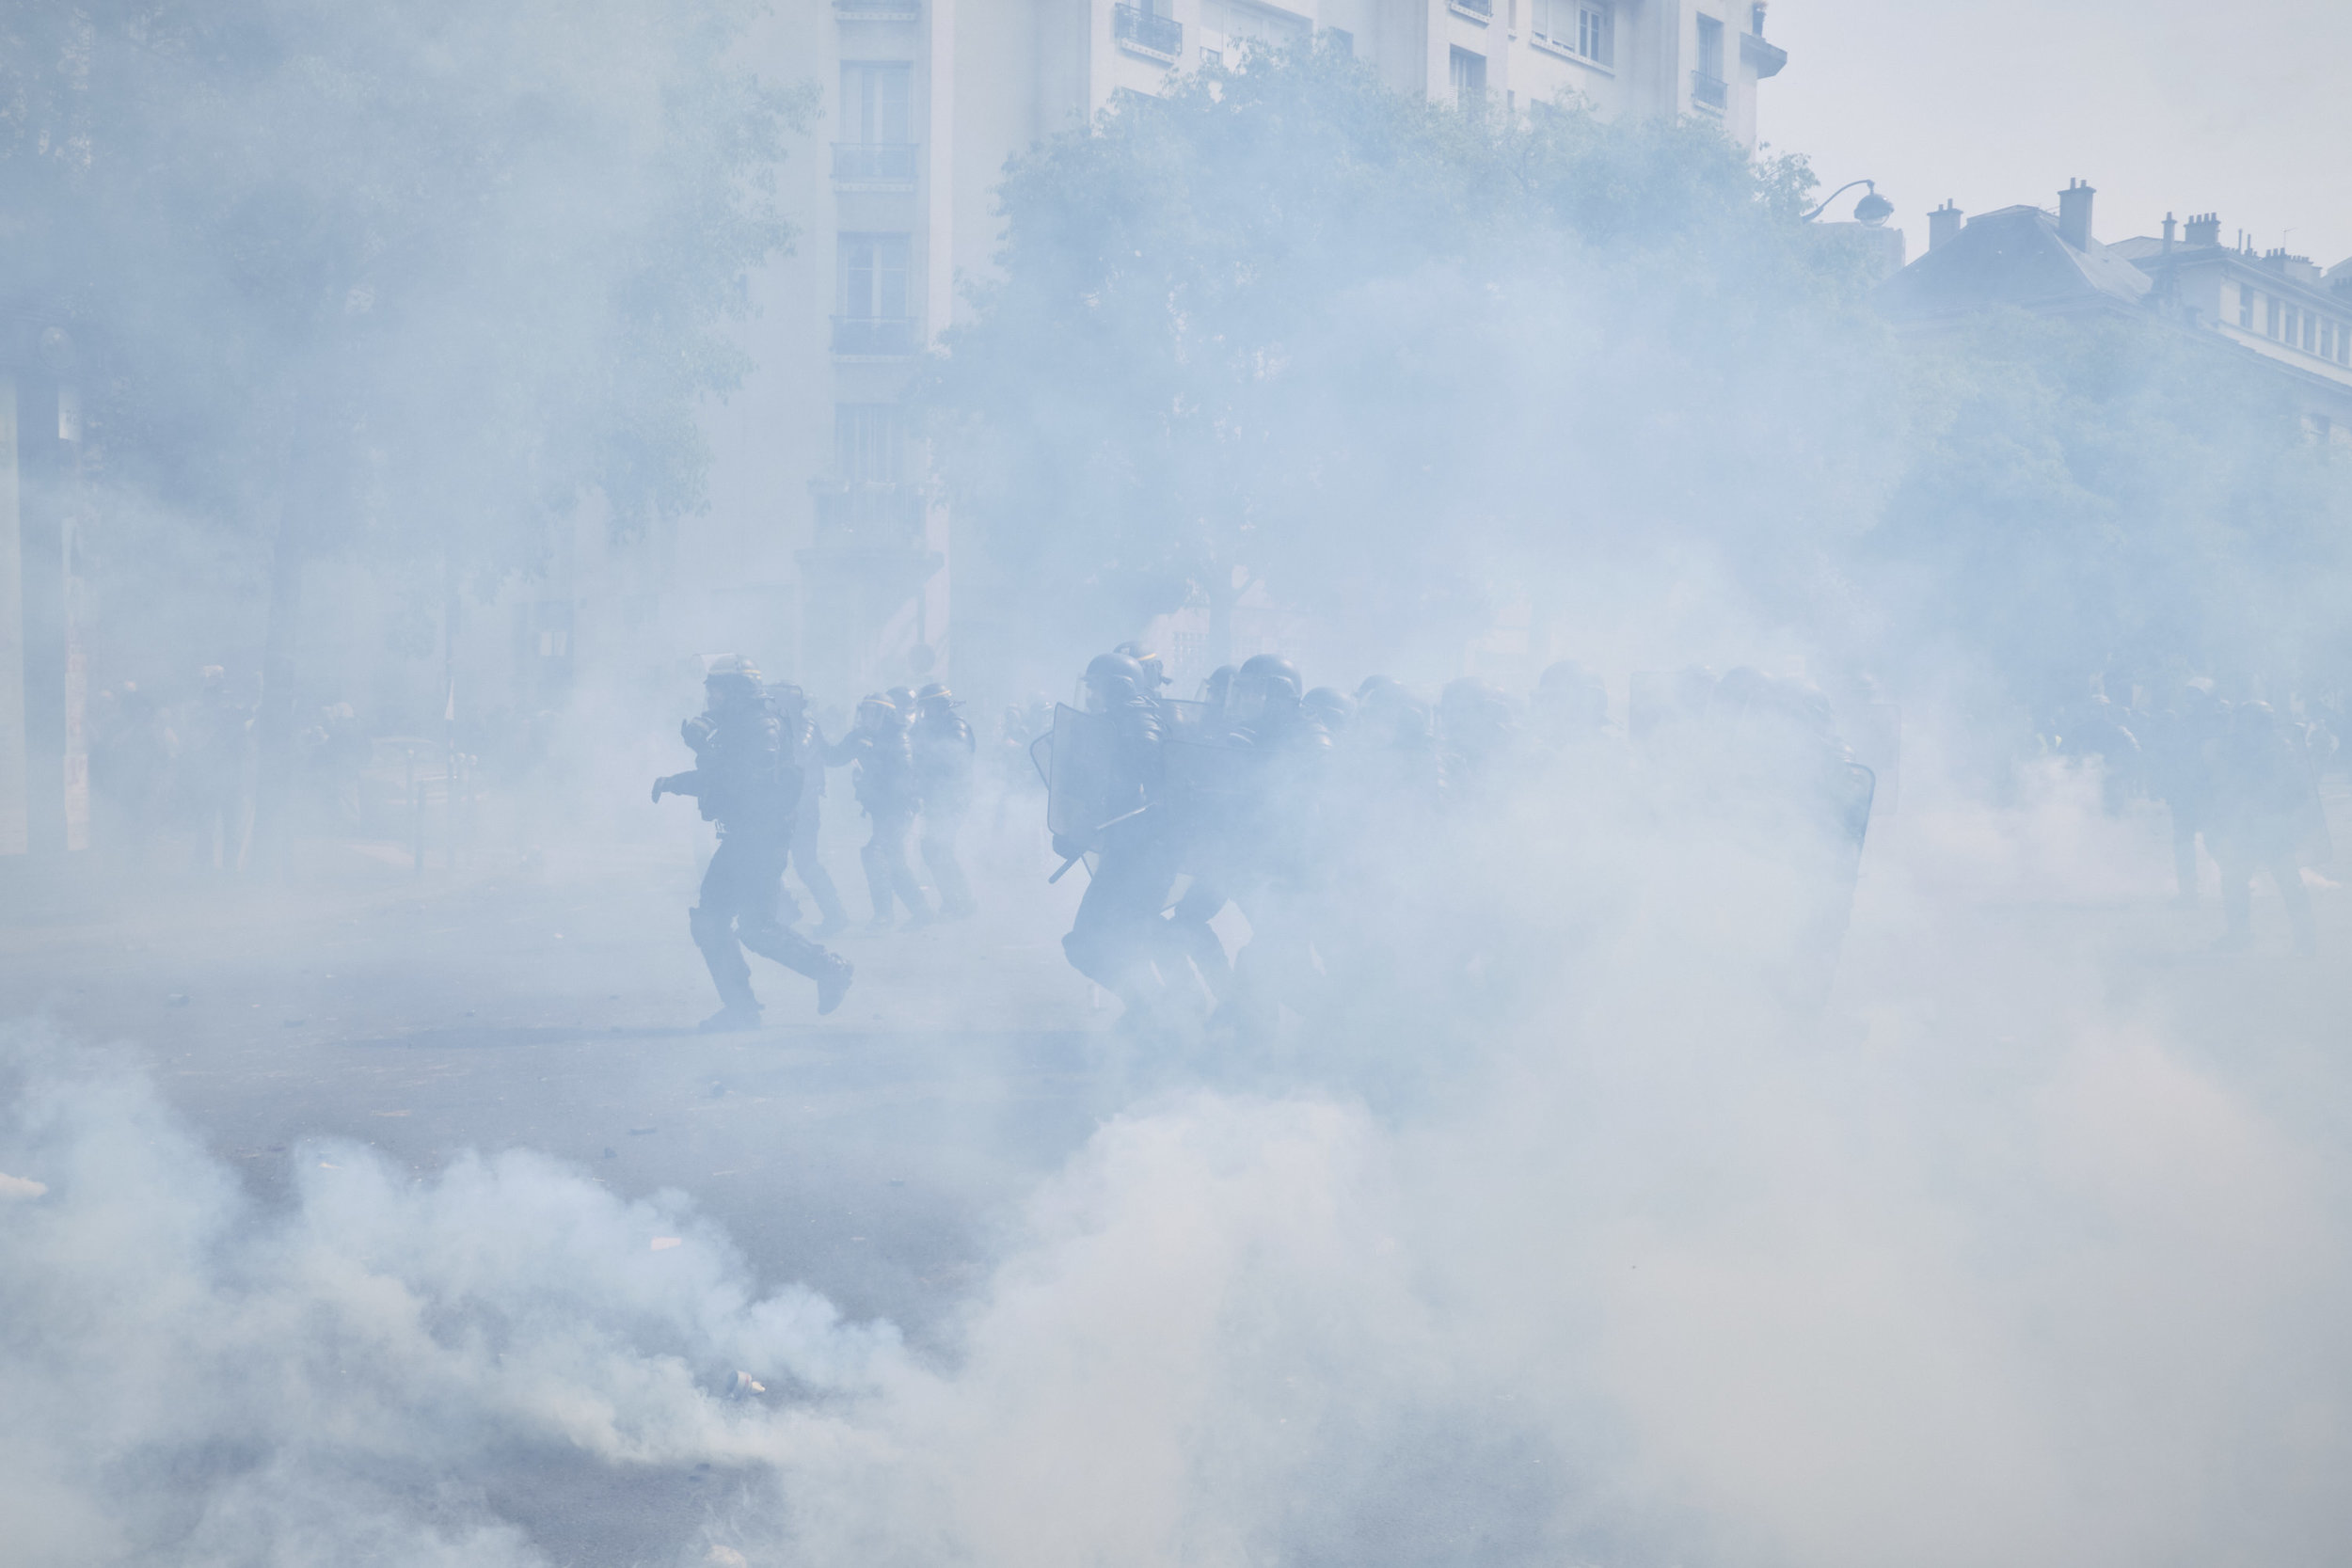 Riot police pushing the crowd of protesters further into The Avenue des Gebelins in order to disperse the blockade.